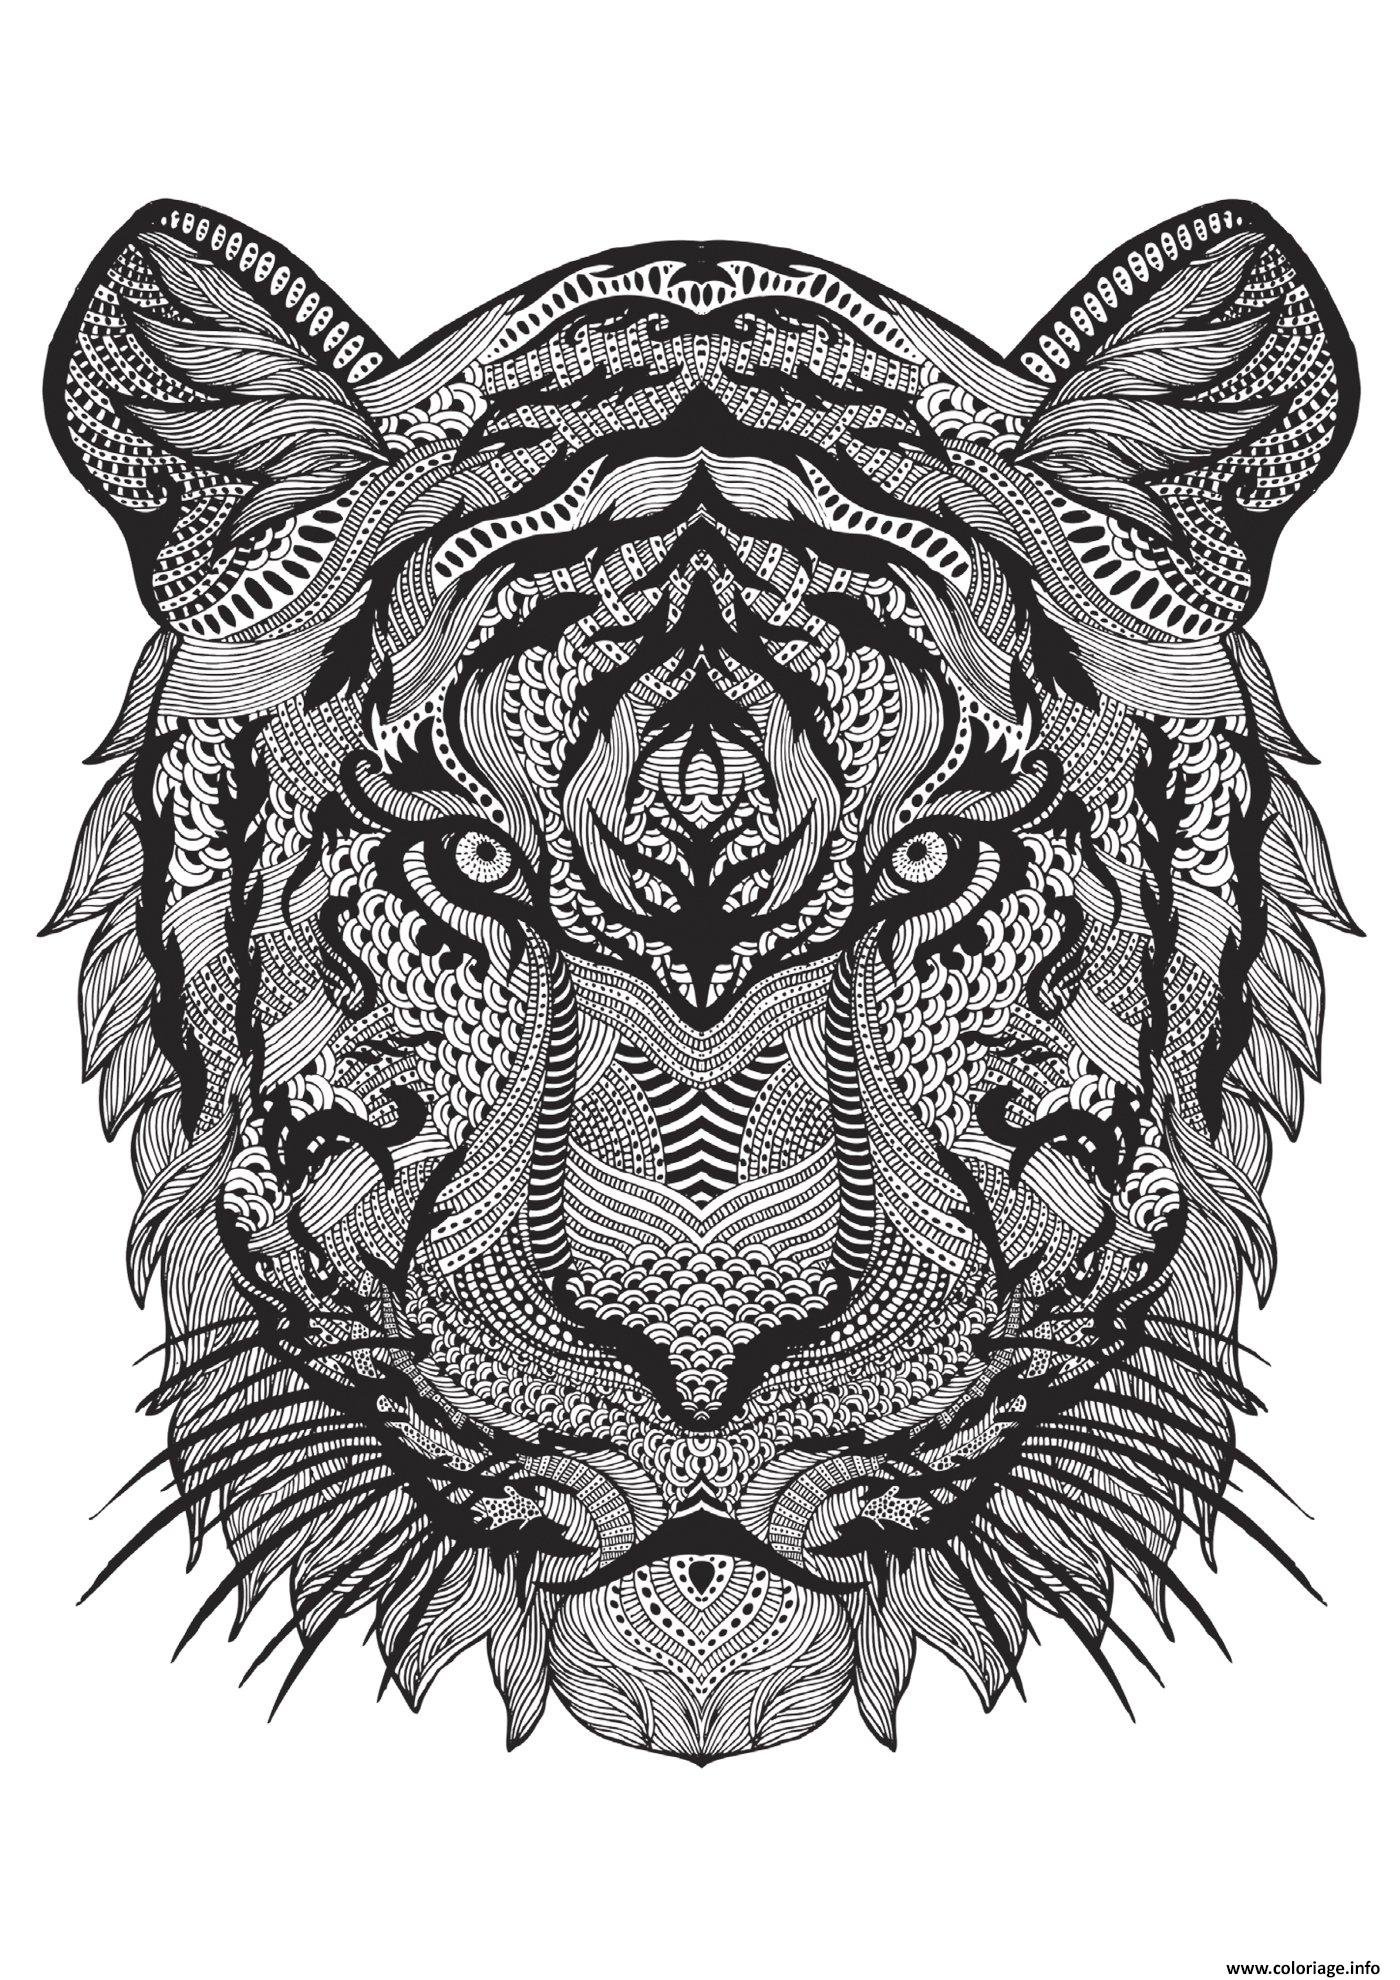 Coloriage adulte animal tigre difficile antistress - Mandalas de tigres ...